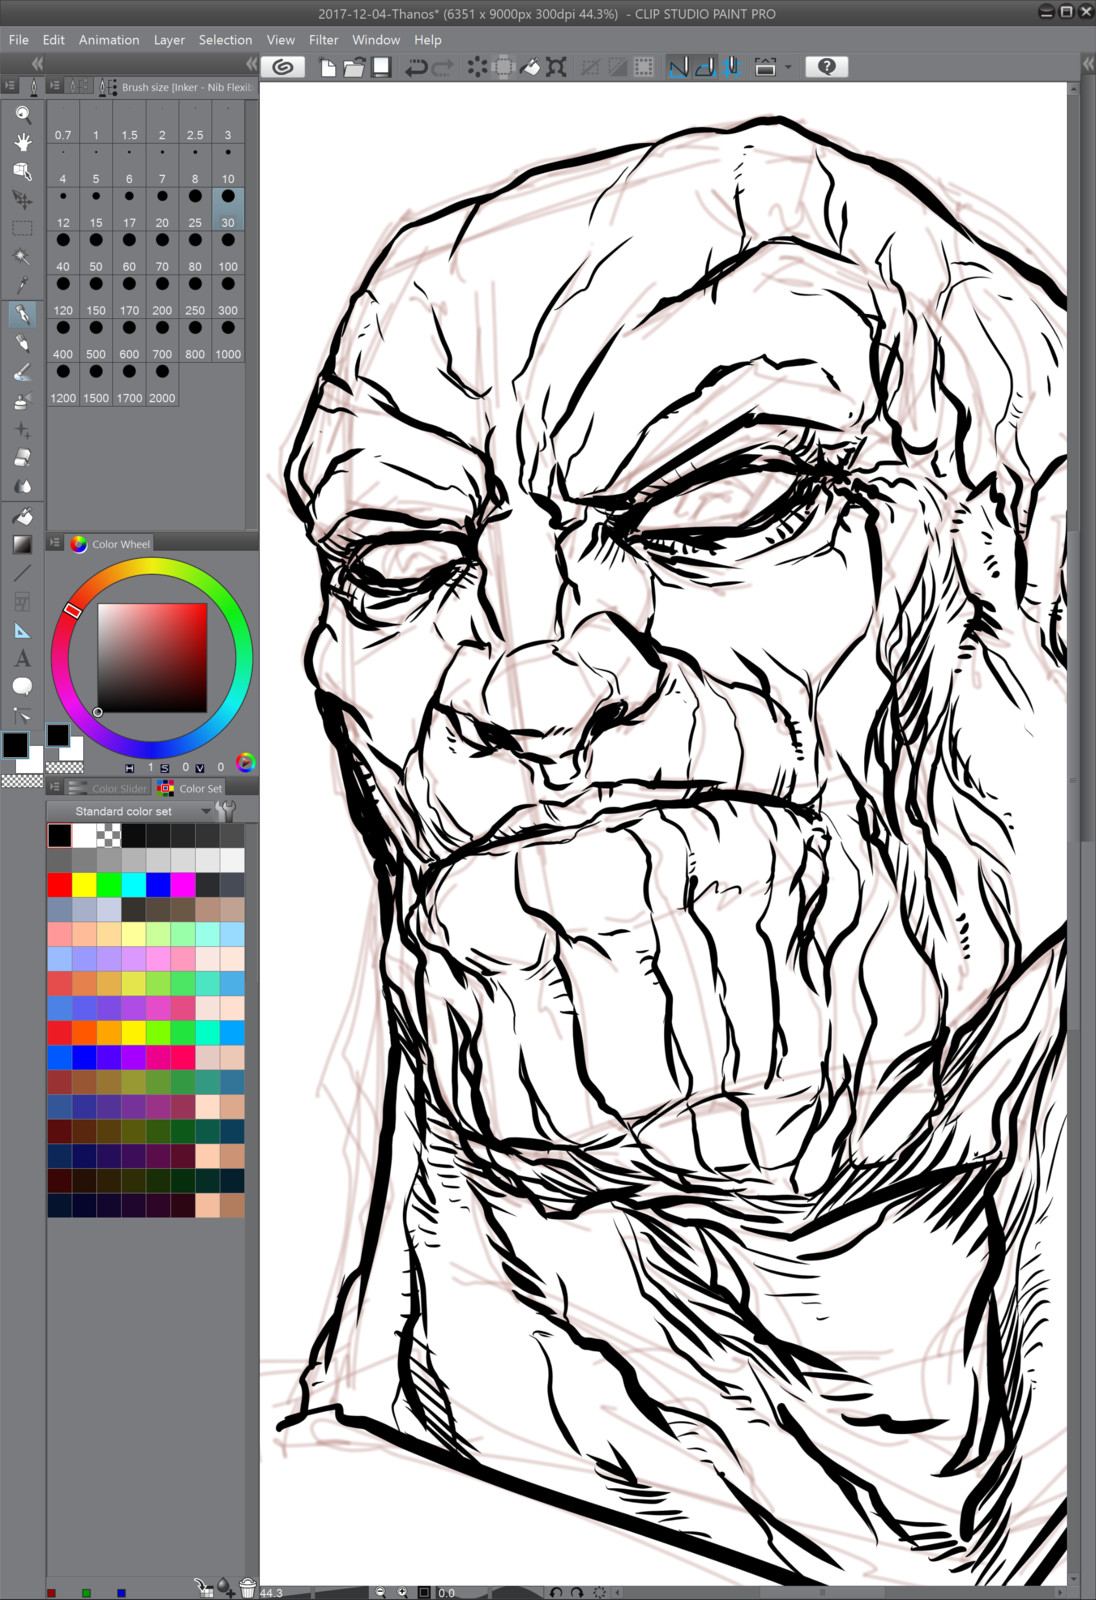 02- Inking over the rough lines